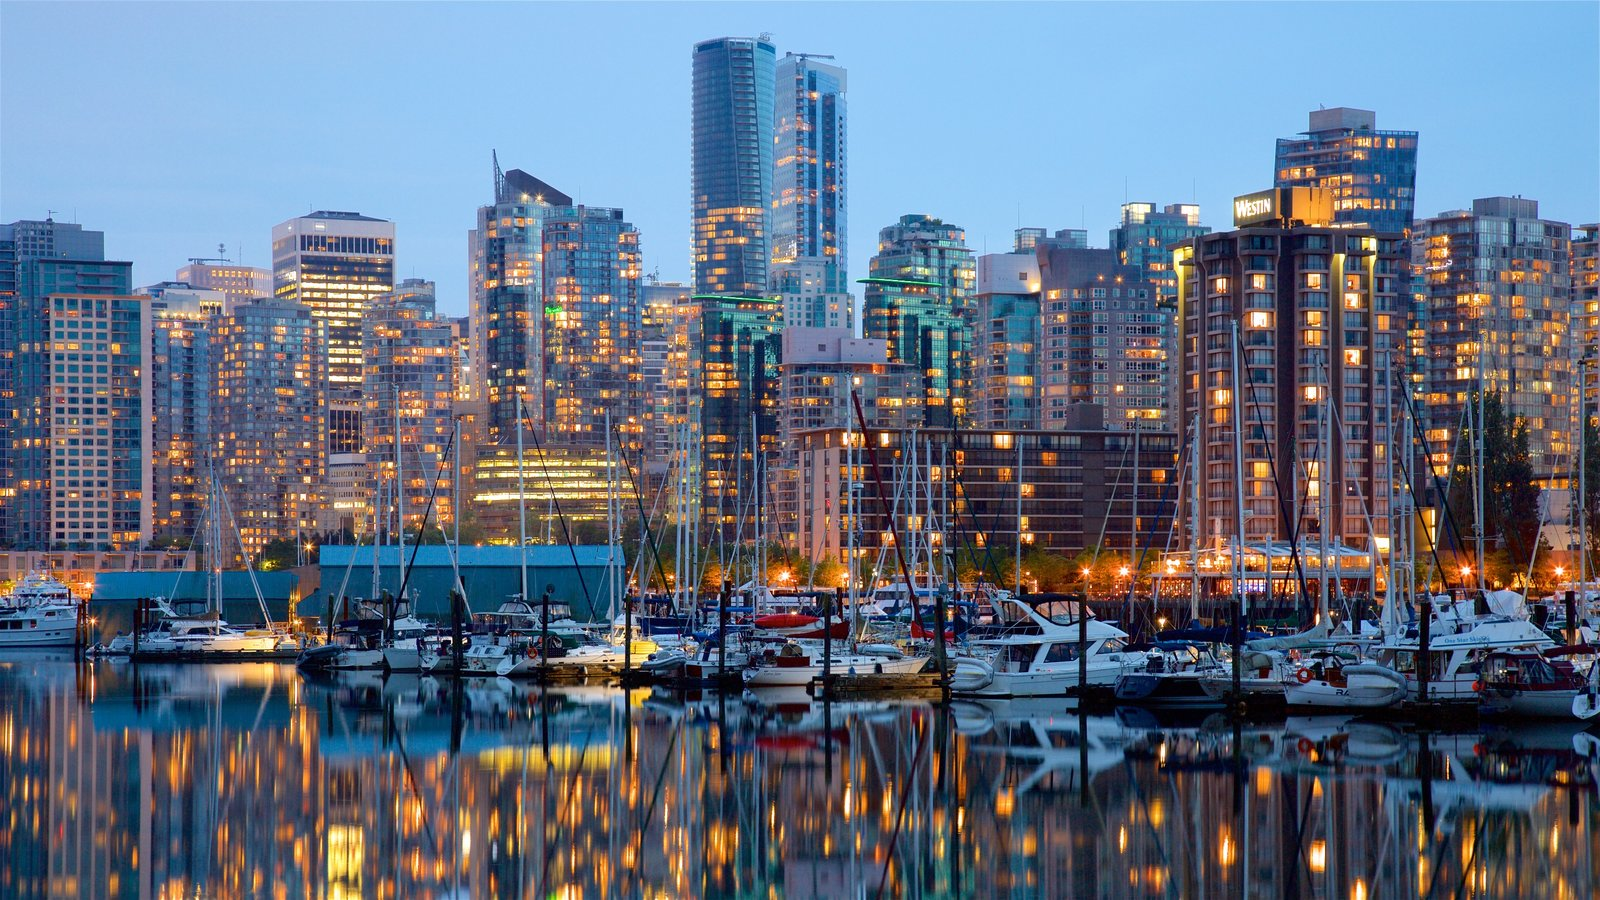 Stanley Park showing a high rise building, a bay or harbor and a city